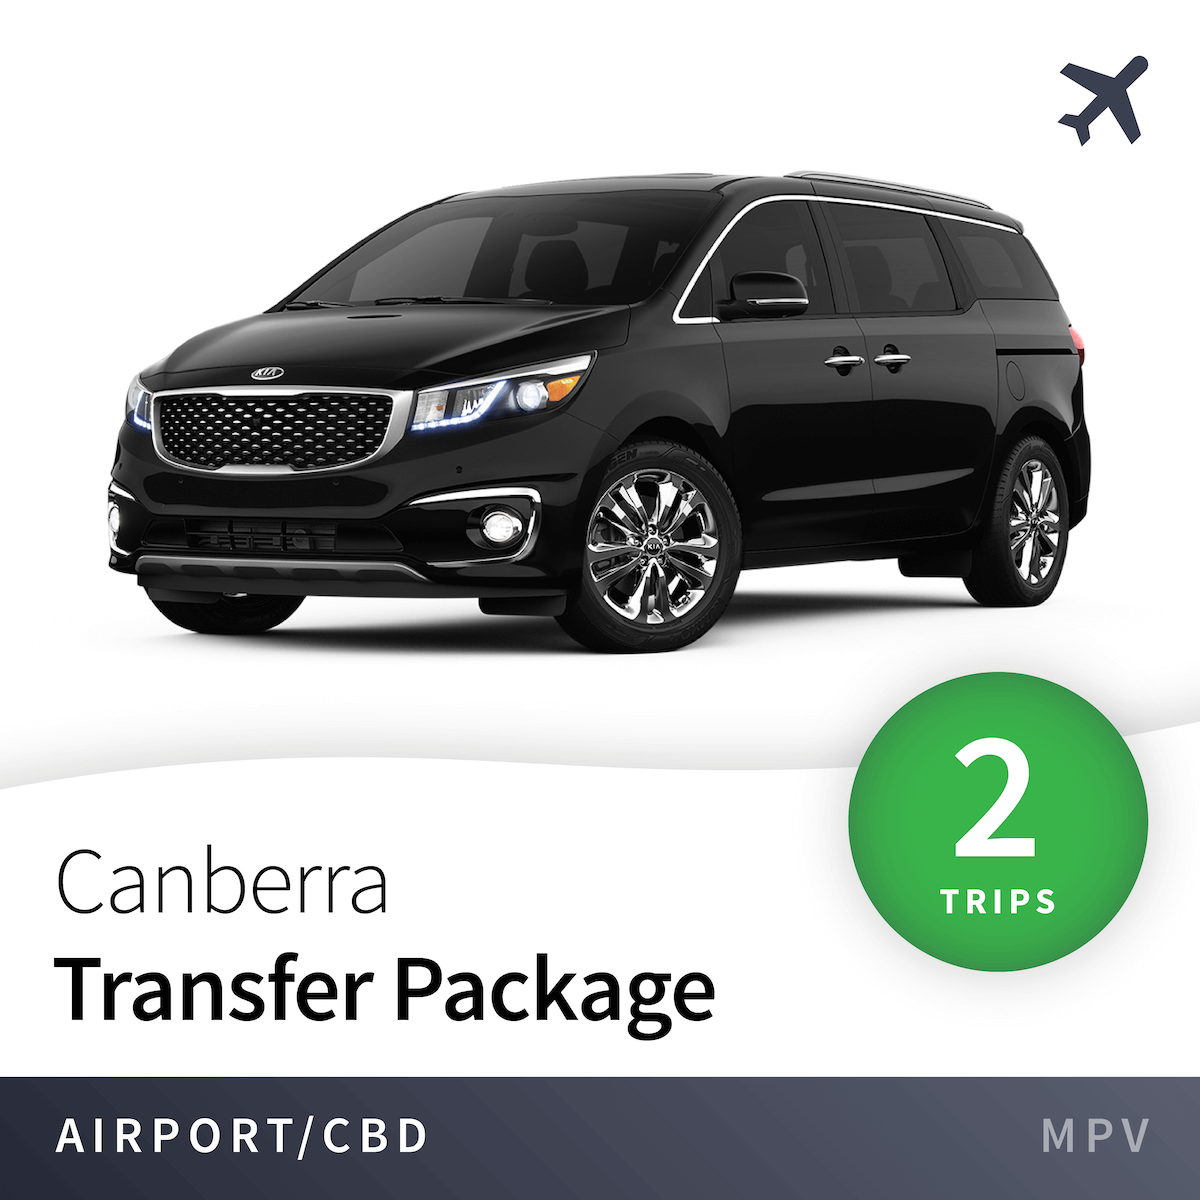 Canberra Airport Transfer Package - MPV (2 Trips) 10